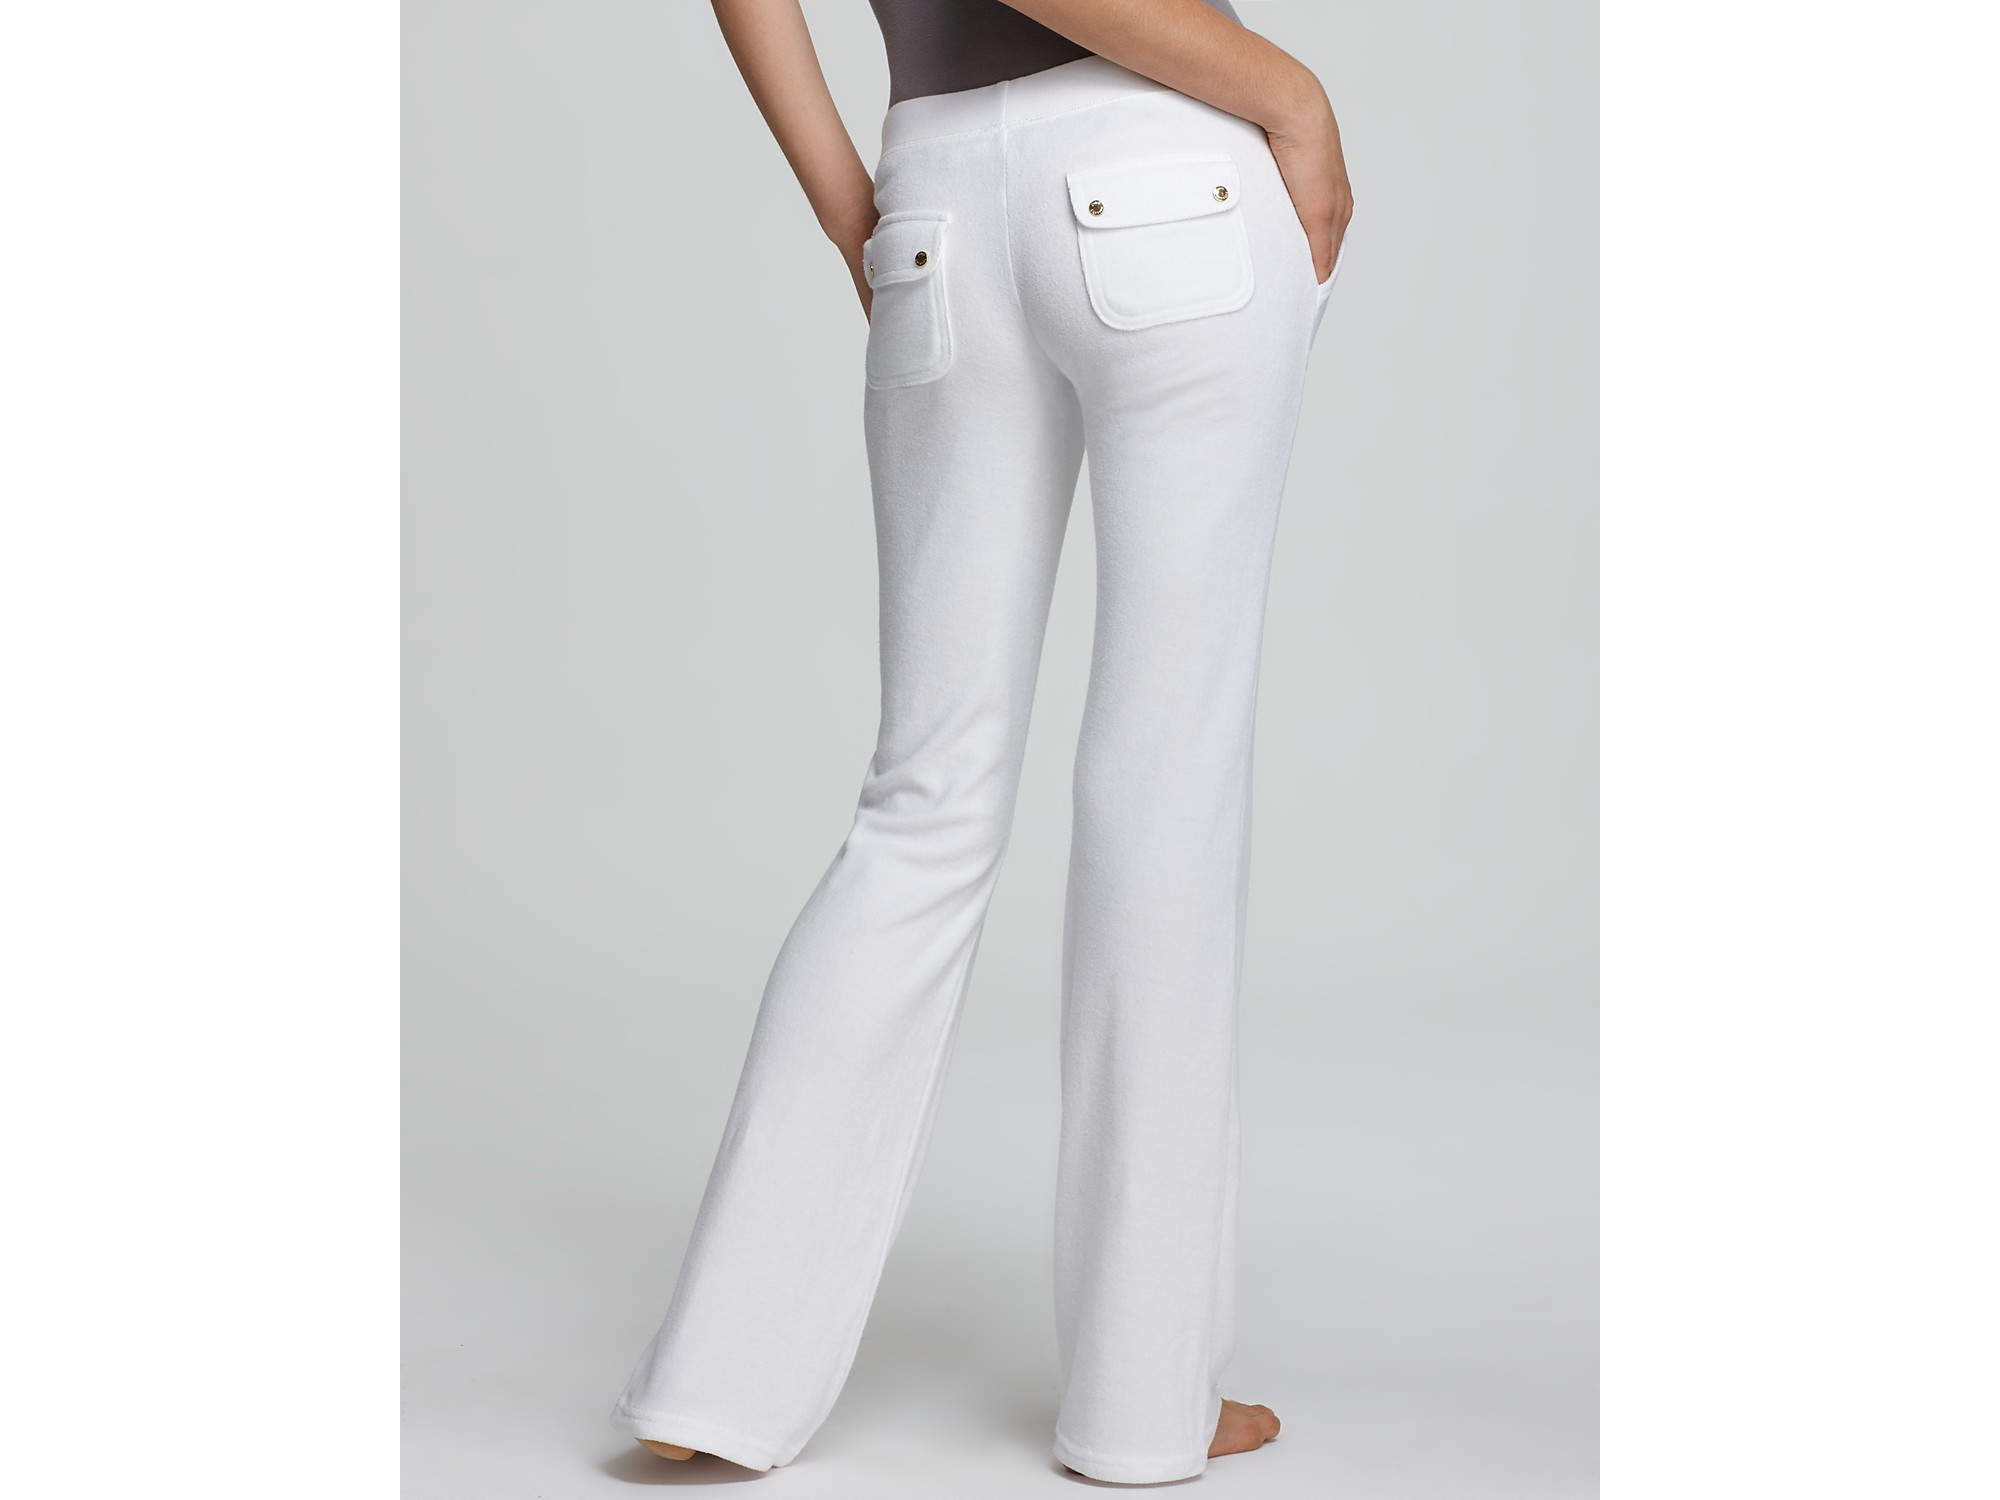 Lyst - Juicy Couture Terry Flare Leg Pants in White 323bdbb0d559